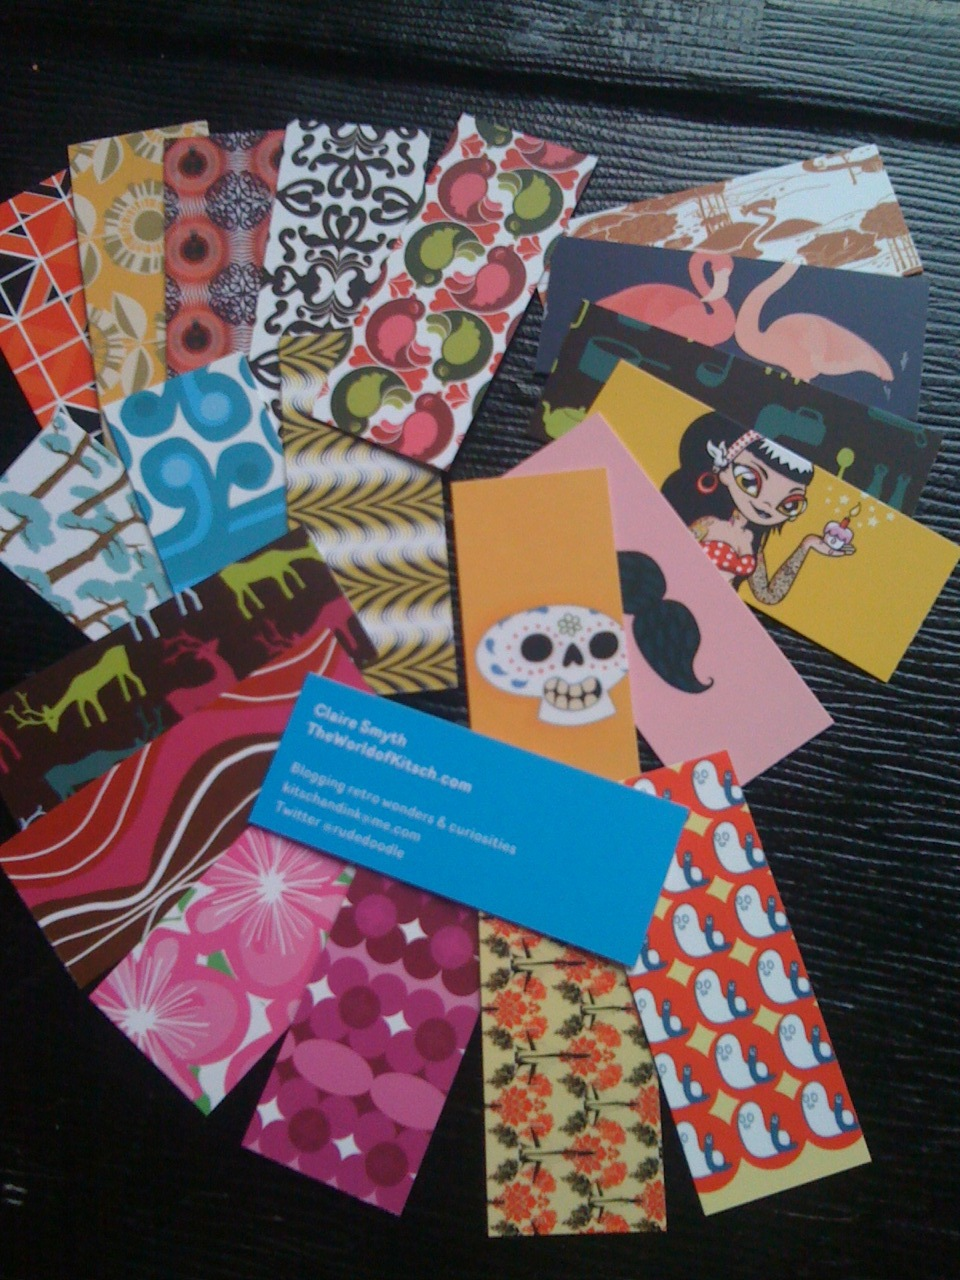 More Kitsch Business Cards & 20% off for TheWorldofKitsch readers at Moo Cards